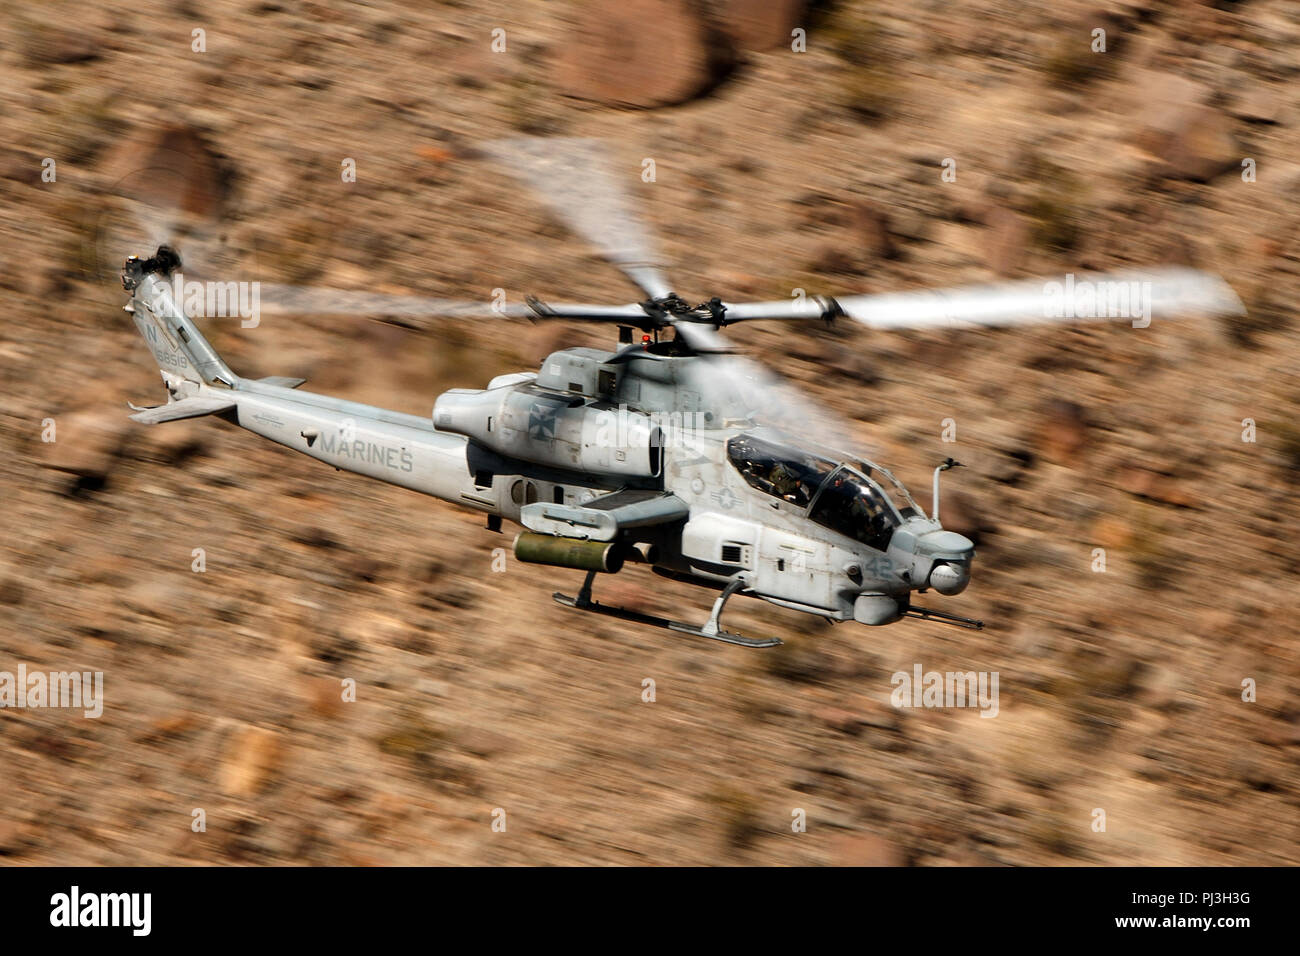 United States Marines Corps Bell AH-1Z Viper (SN 168519) from the  Marine Light Attack Helicopter Squadron 169 (HMLA-169) flies low level on the Jedi Transition through Star Wars Canyon / Rainbow Canyon, Death Valley National Park, Panamint Springs, California, United States of America Stock Photo